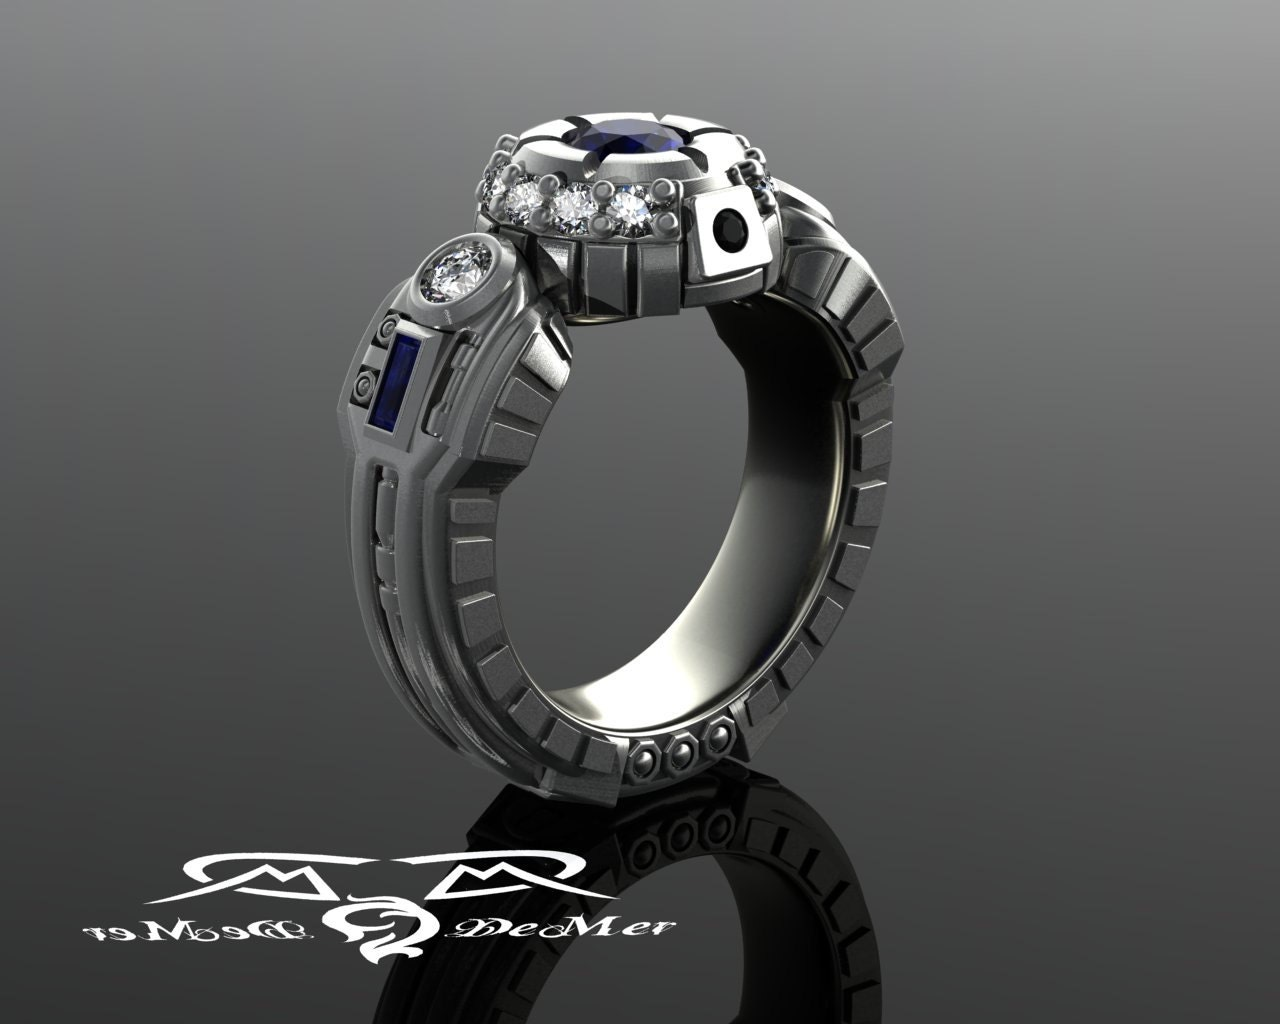 design band ring engagement put a custom sherrie men stella gray bands mark rings blue jpg s it black diamond champagne on wedding oval wg